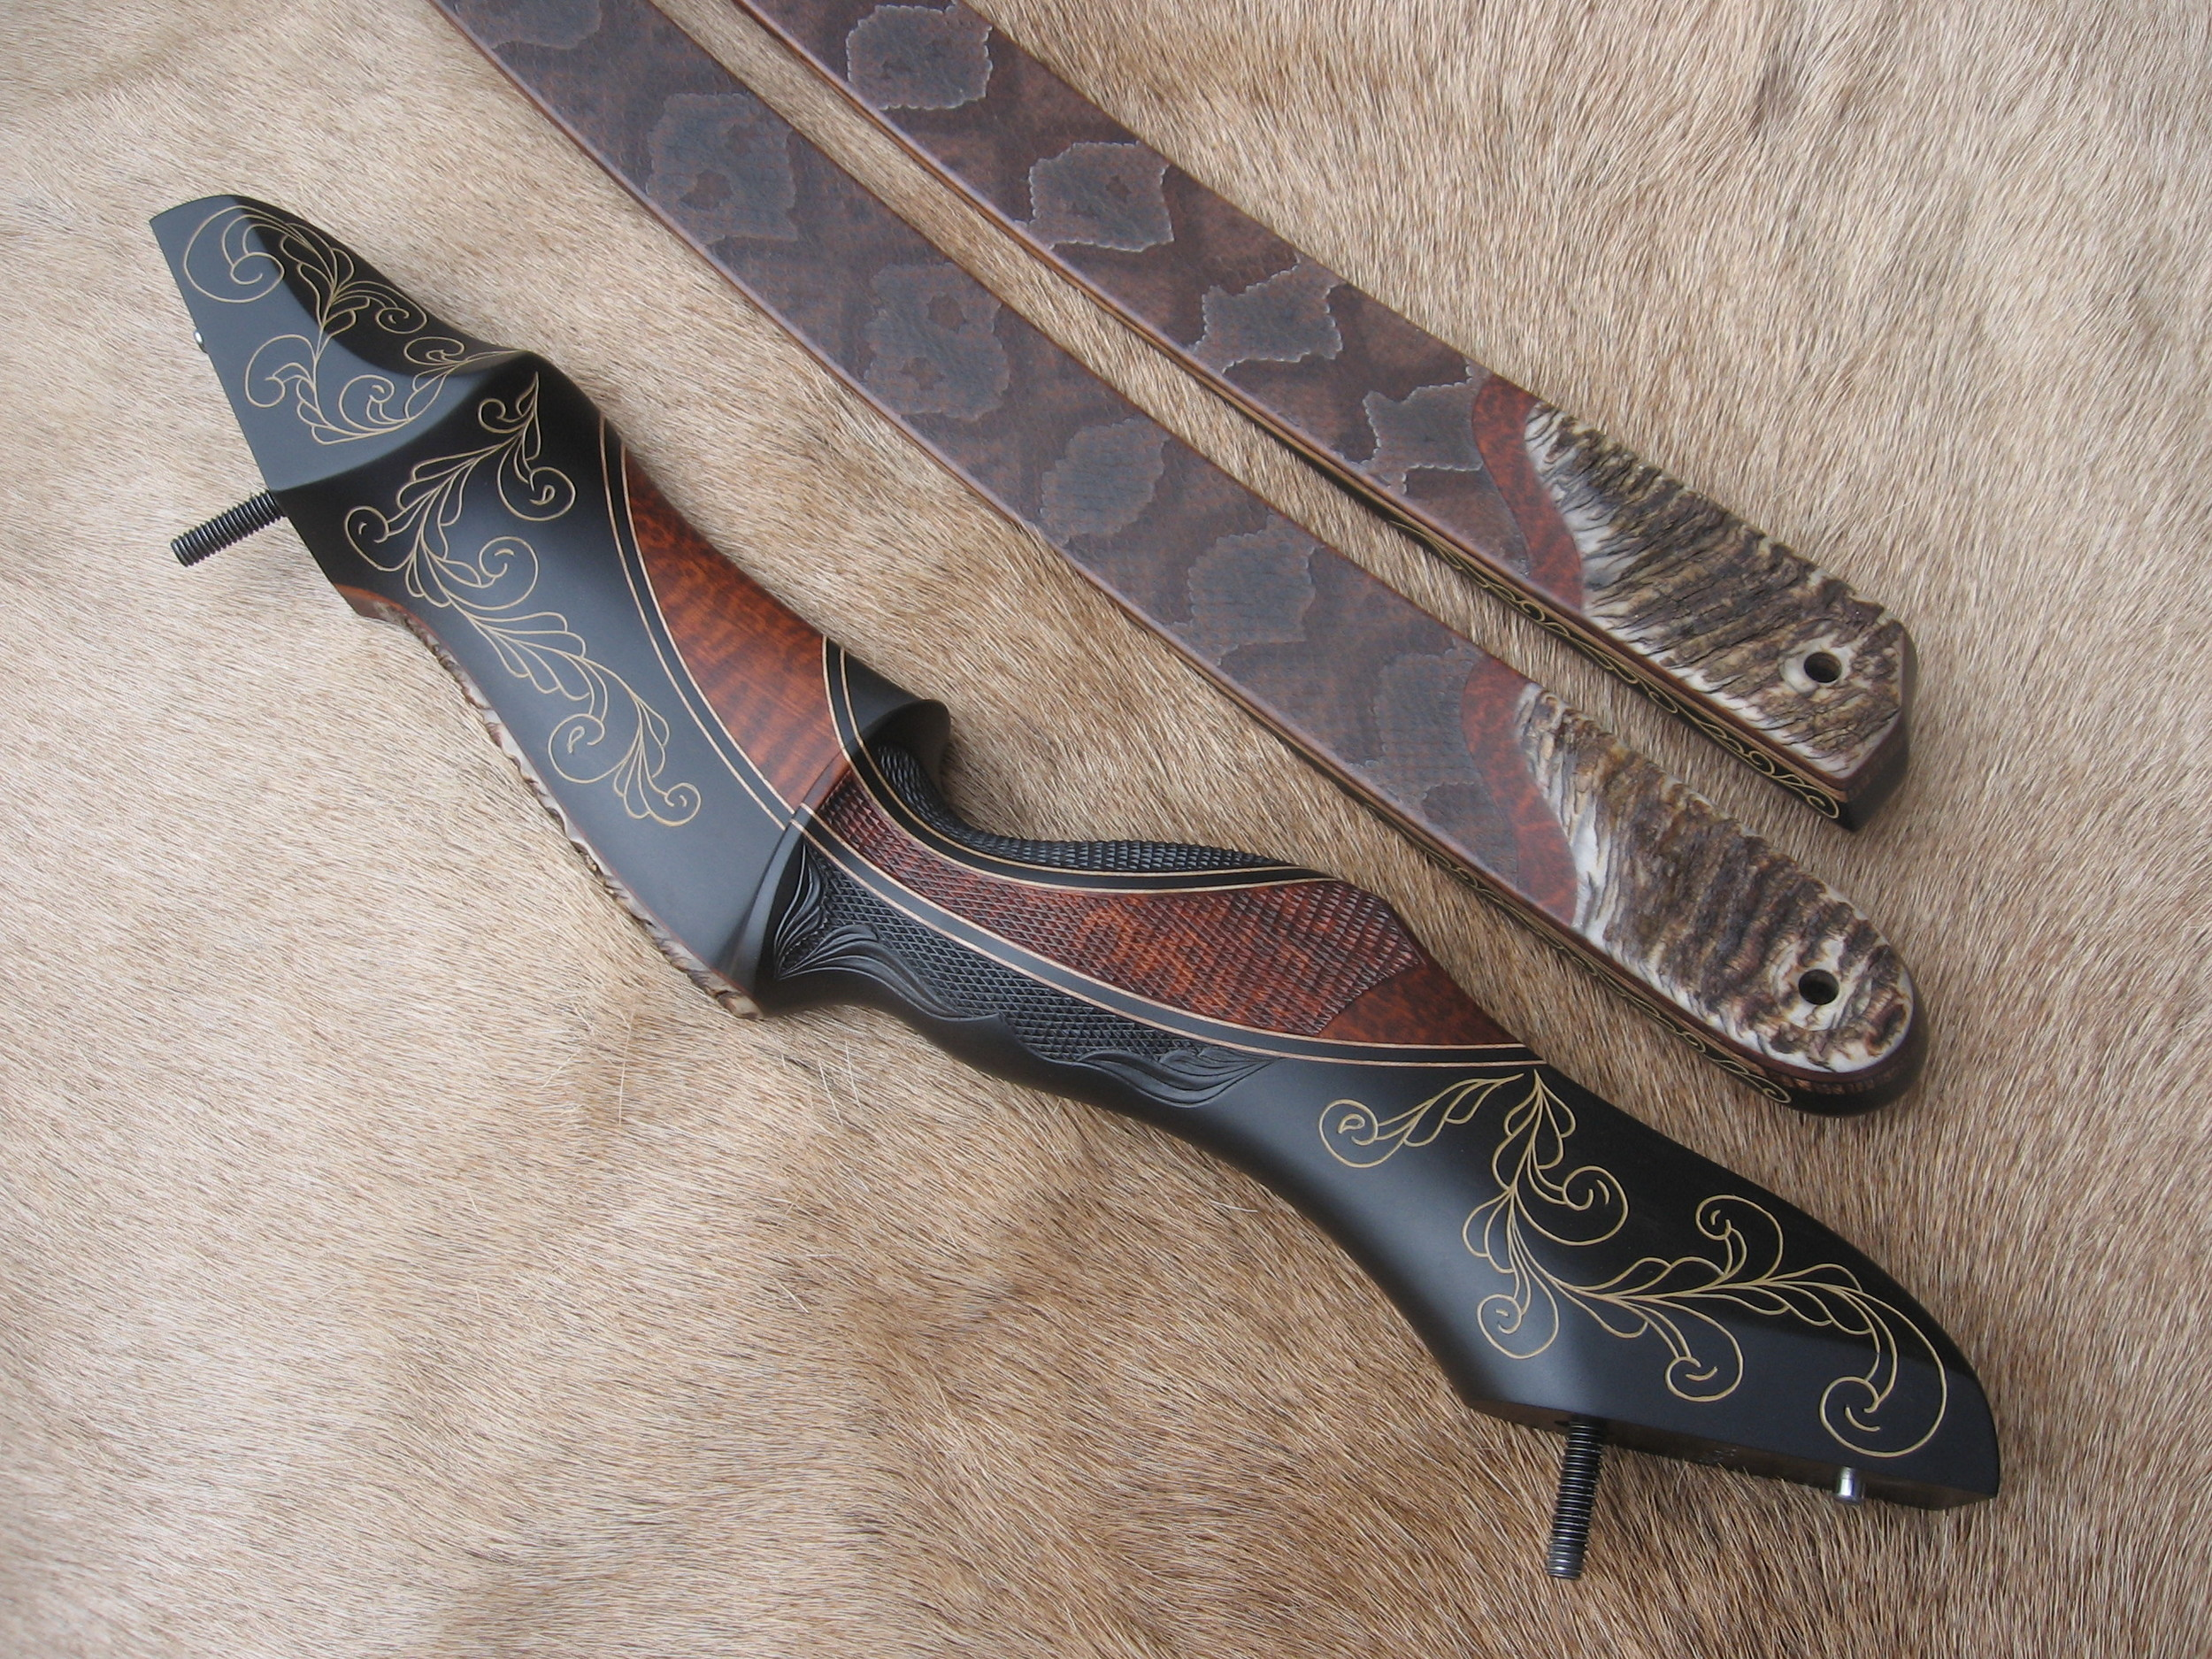 Gaboon Riser, snakewood crescent, hand carved scrolling. Call or e-mail for quote.